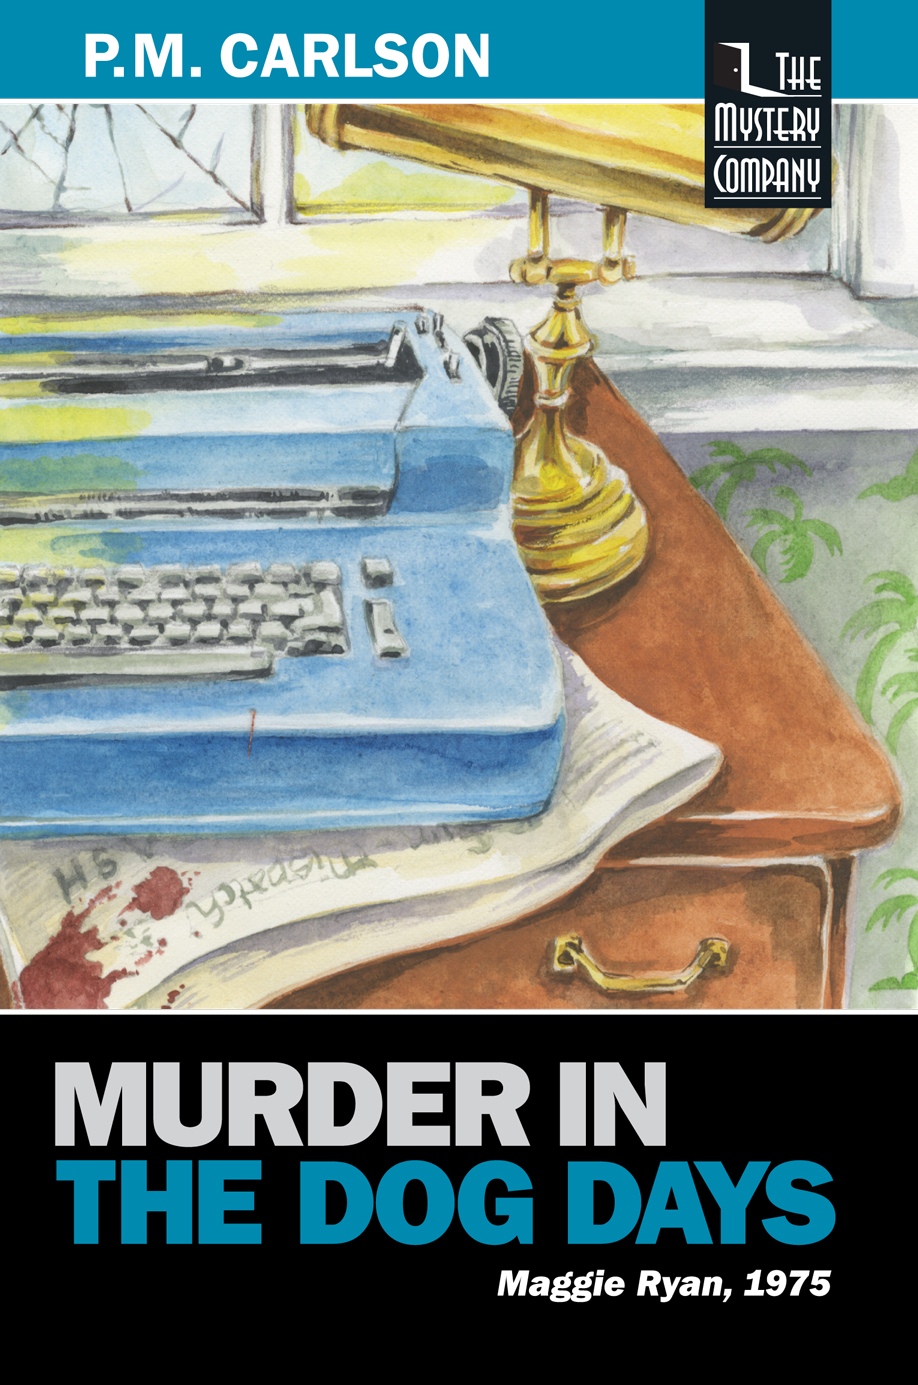 Murder in the Dog Days by P.M. Carlson